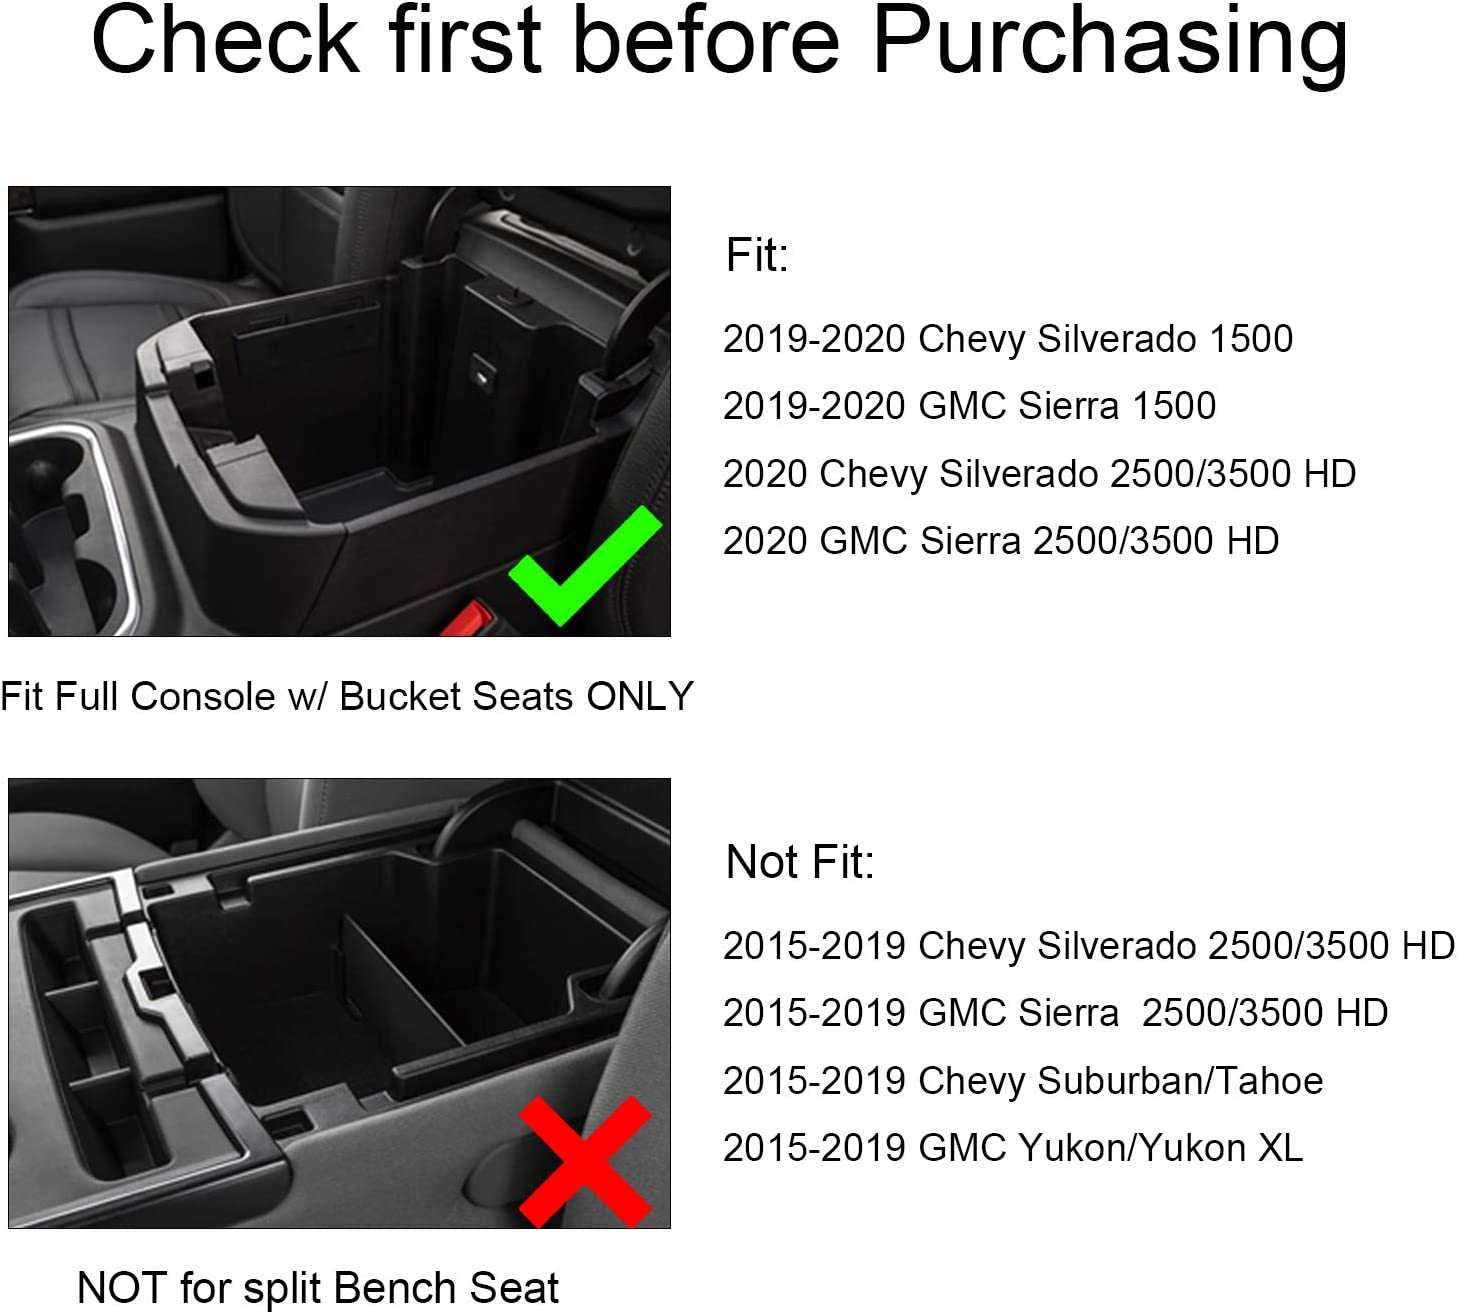 SENSHINE Center Console Organizer for 2019 Chevy Silverado 1500 GMC Sierra 1500 and 2020 Chevy Silverado GMC Sierra 1500 2500 3500 HD Armrest Tray Box Blue Trim, Full Console w//Bucket Seats ONLY